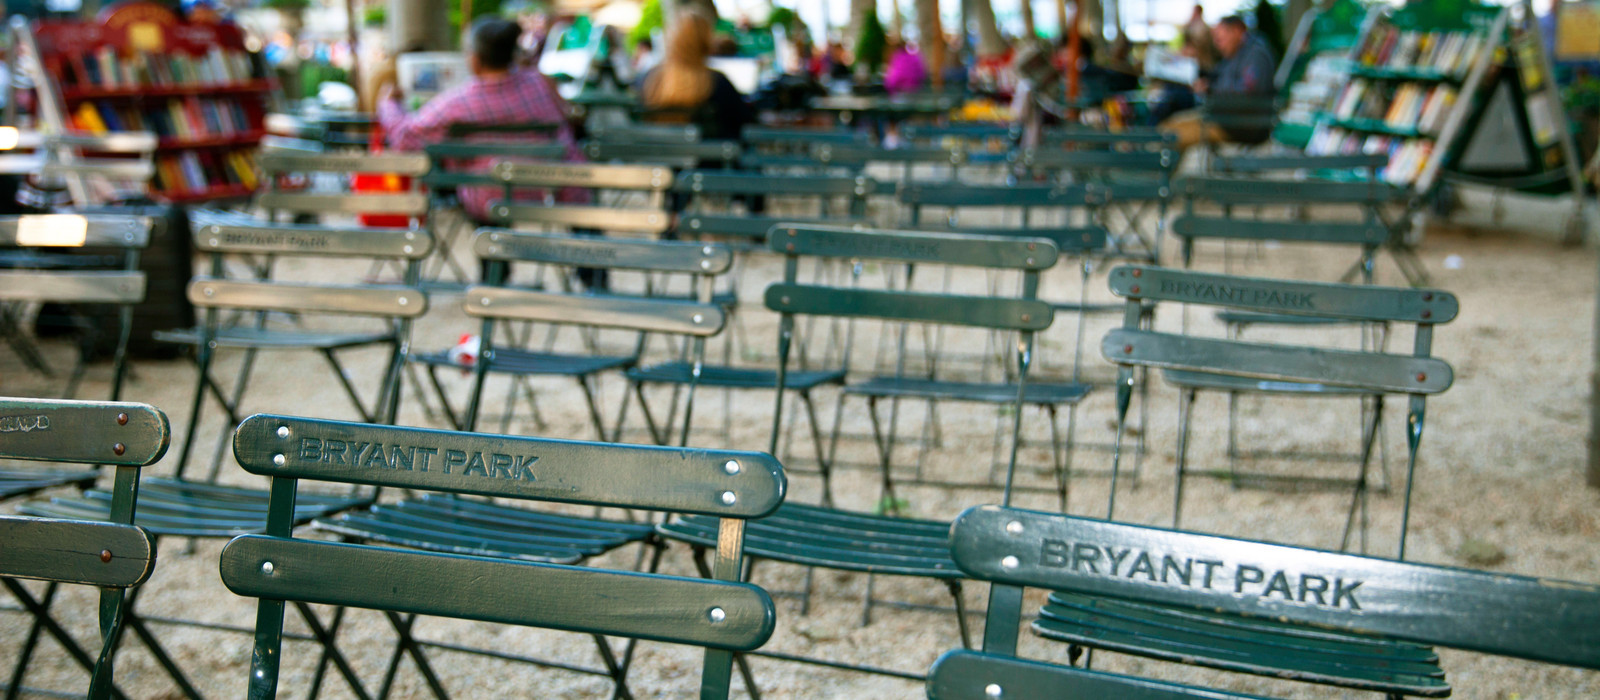 Bryant Park Concerts and Events | Westgate New York Grand Central